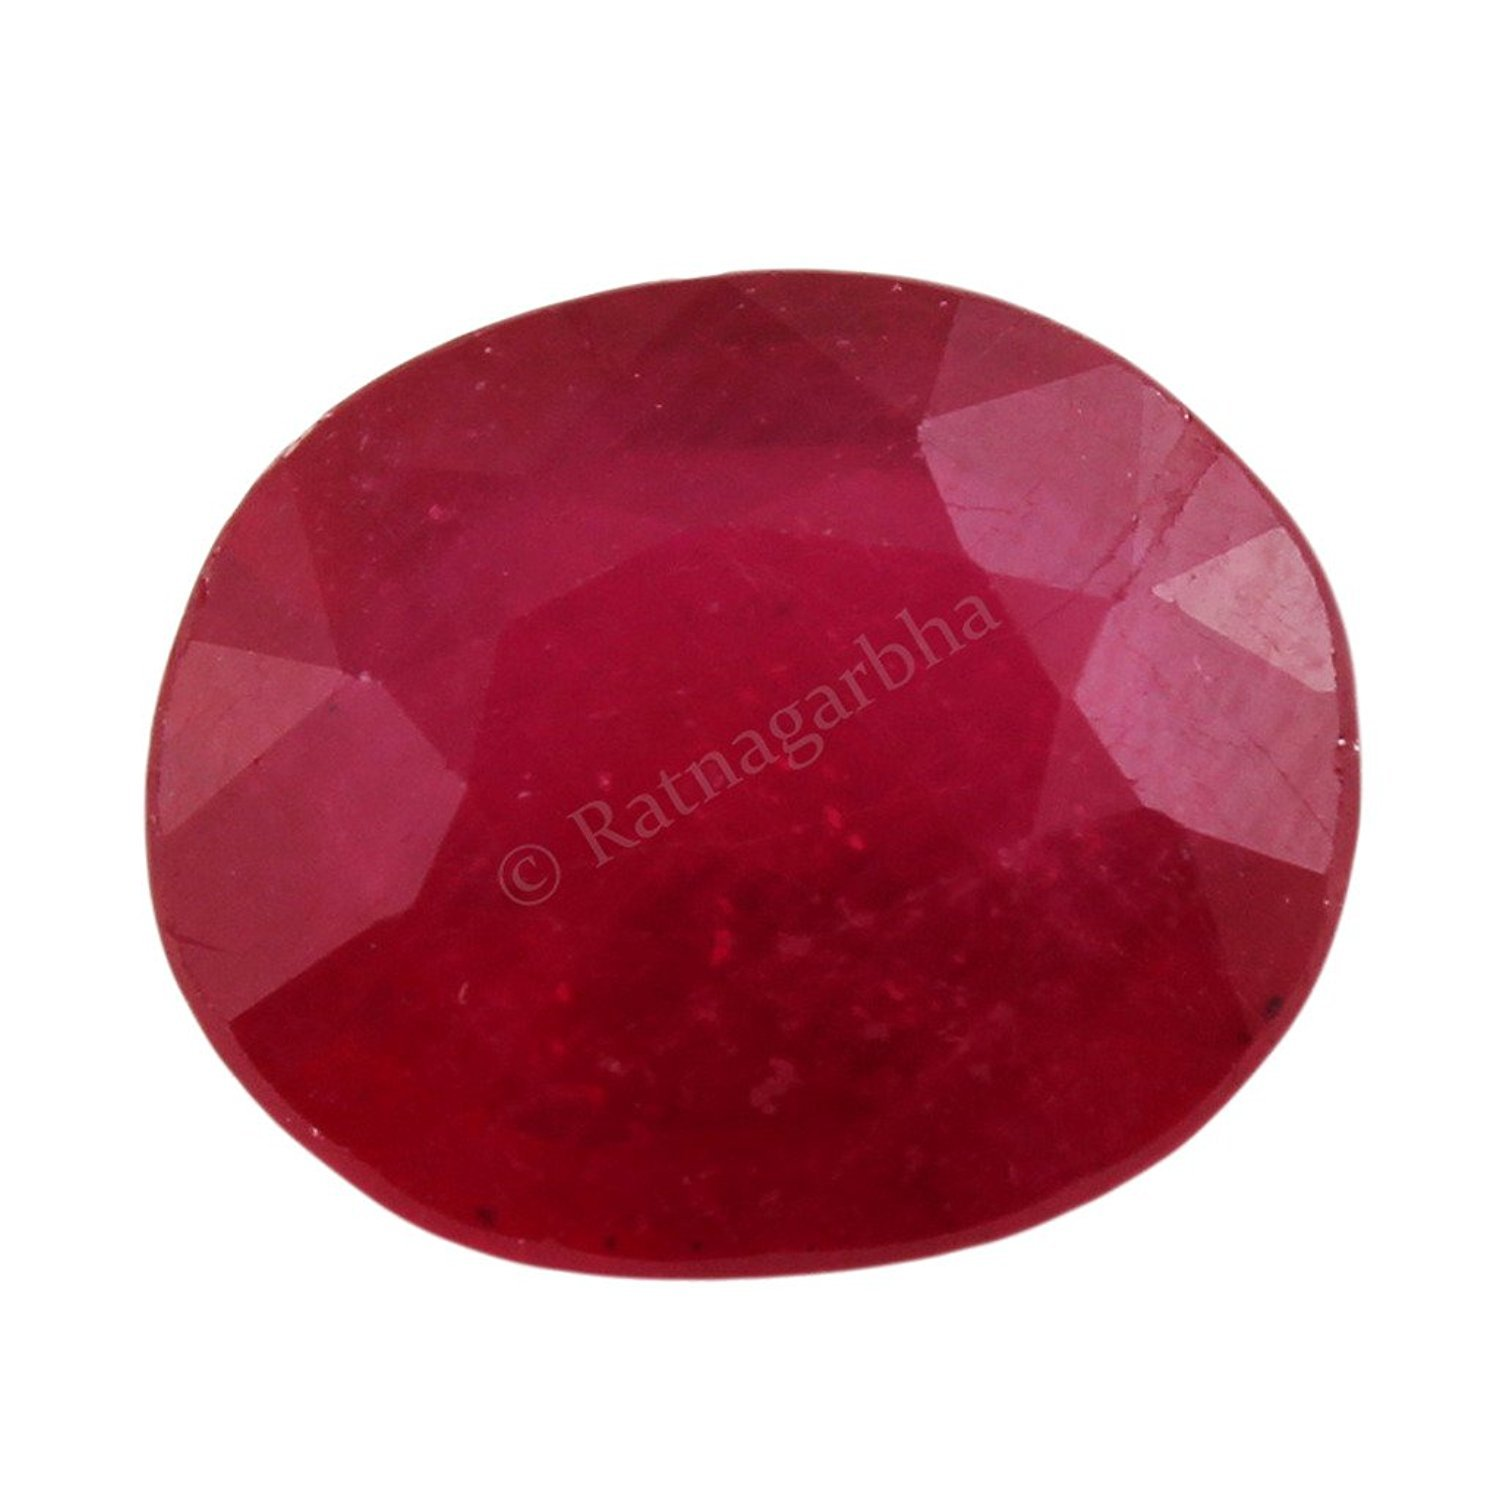 7.50 ratti natural red Ruby for Leo planet, gemstone for astrological use, red color, wholesale price, Prepared exclusively by Ratnagarbha.